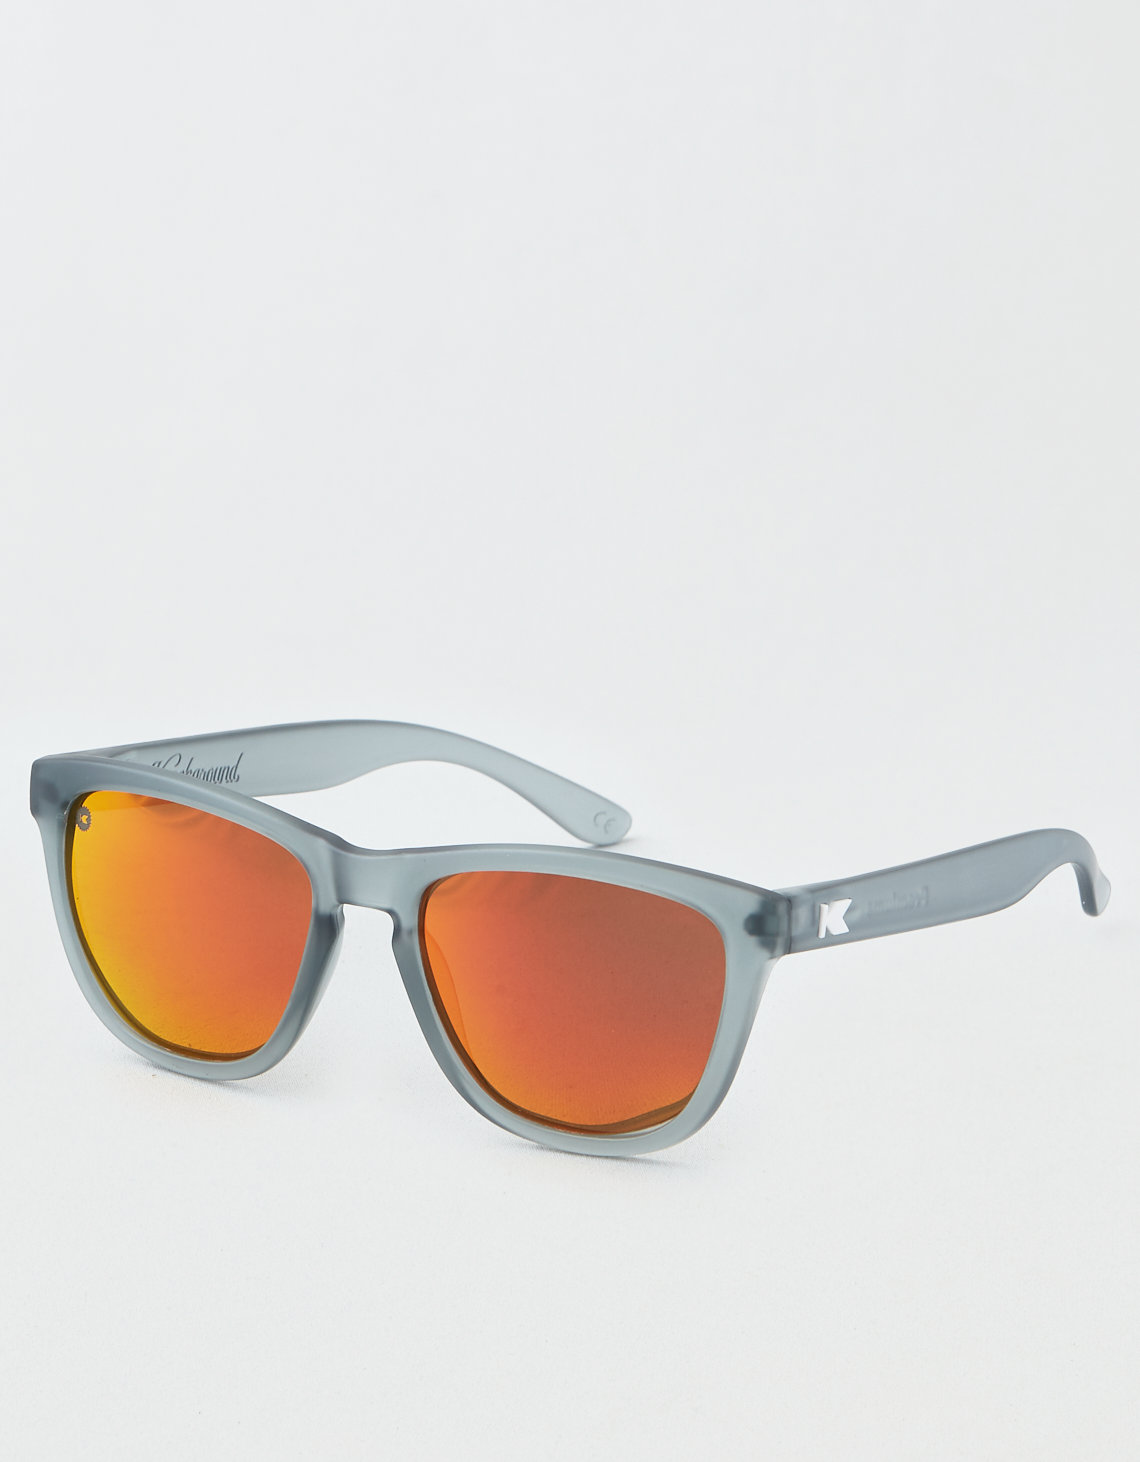 0cd47f3d313e8 Knockaround Premiums Sunglasses. Placeholder image. Product Image